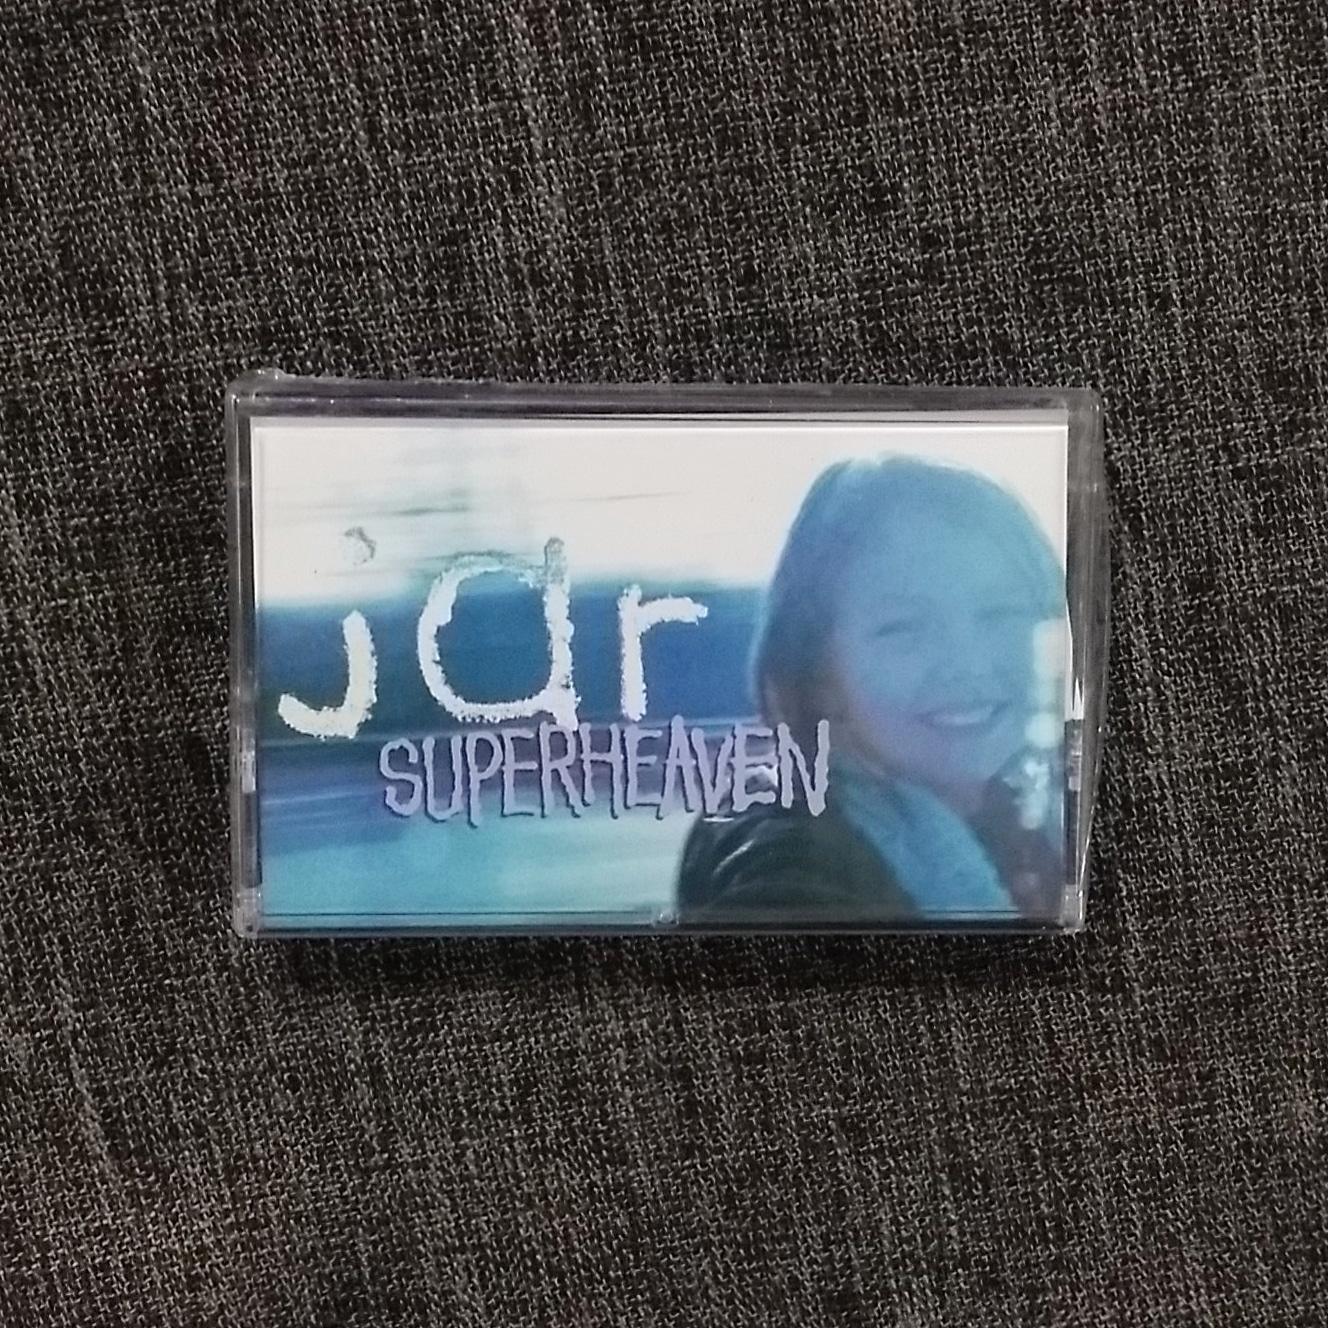 [SOLD] Superheaven - Jar (Run for Cover Records)